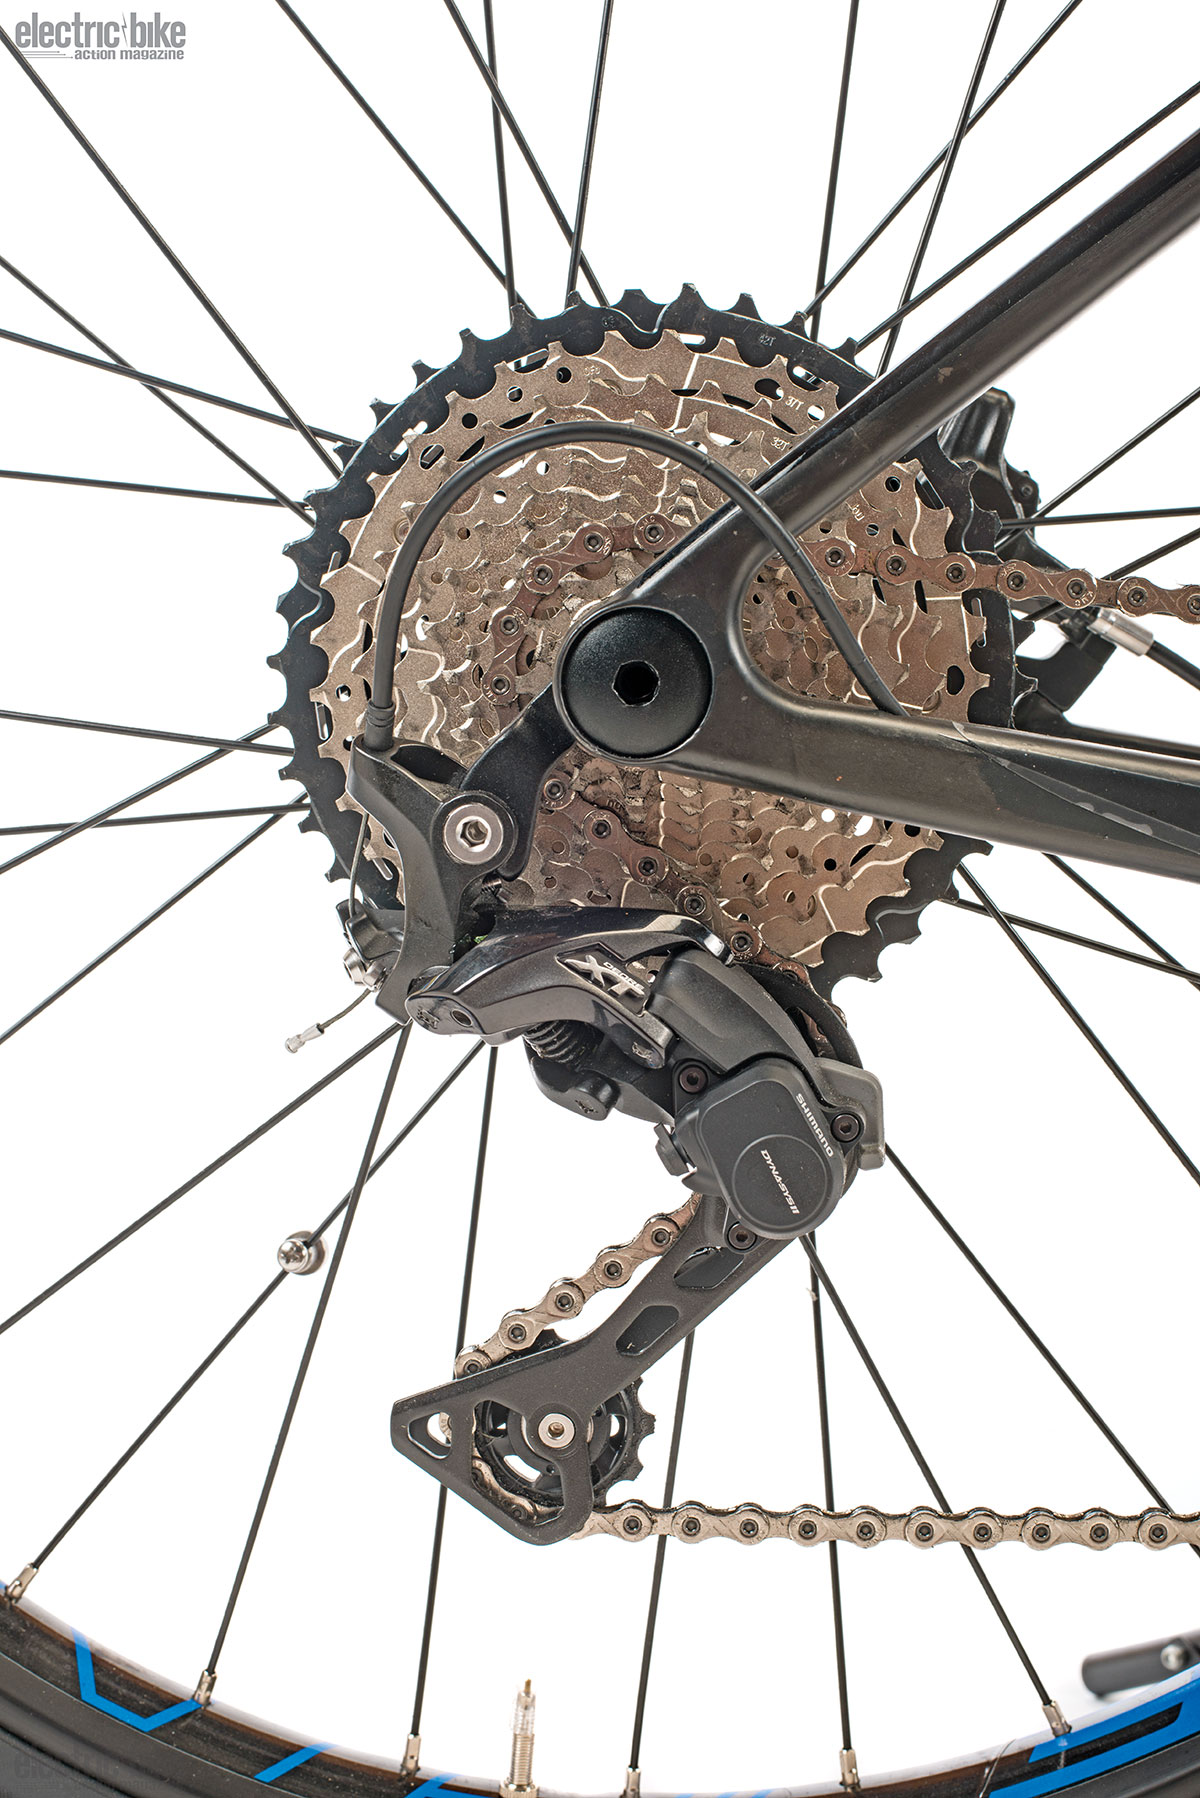 Shimano Deore XT components with the 11-speed cassette that offers really precise control.